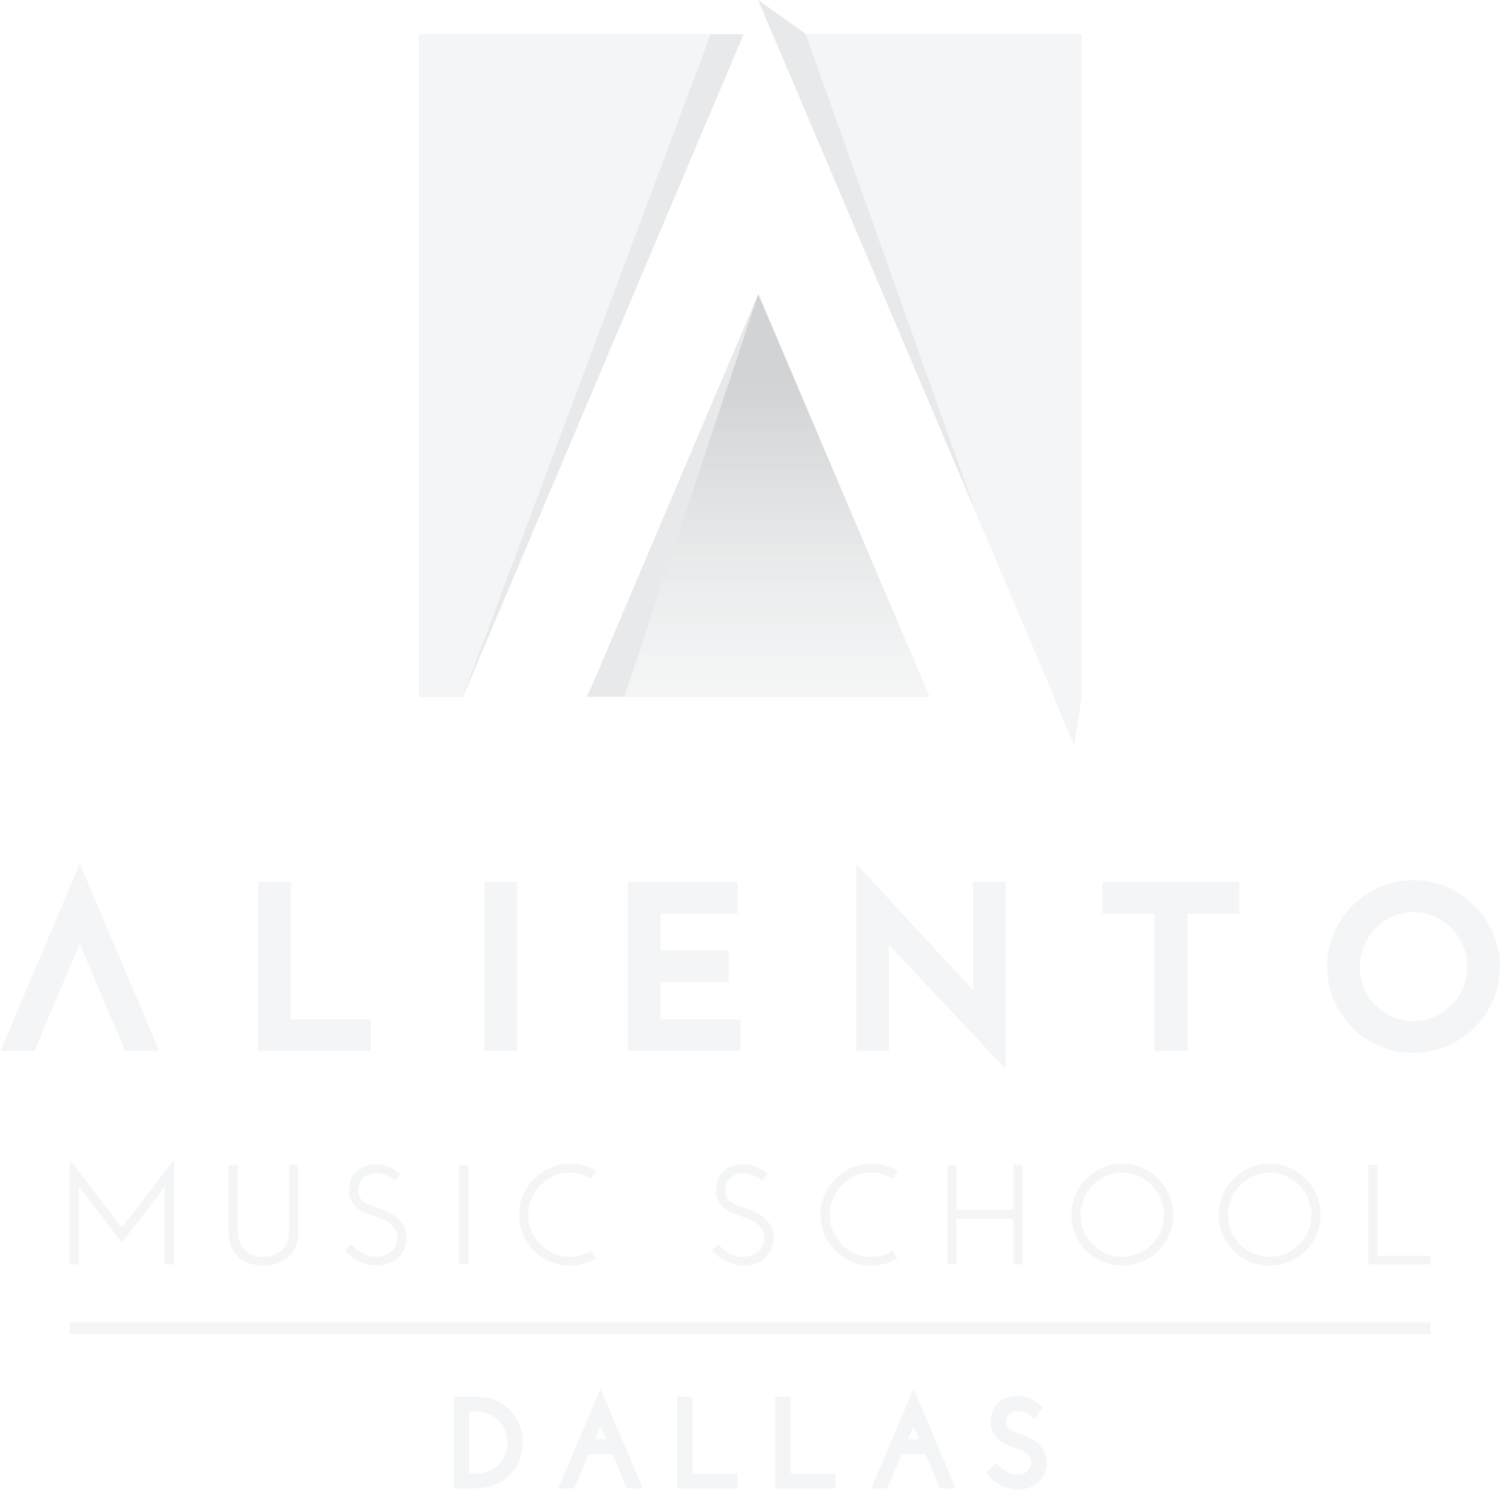 Aliento Music School